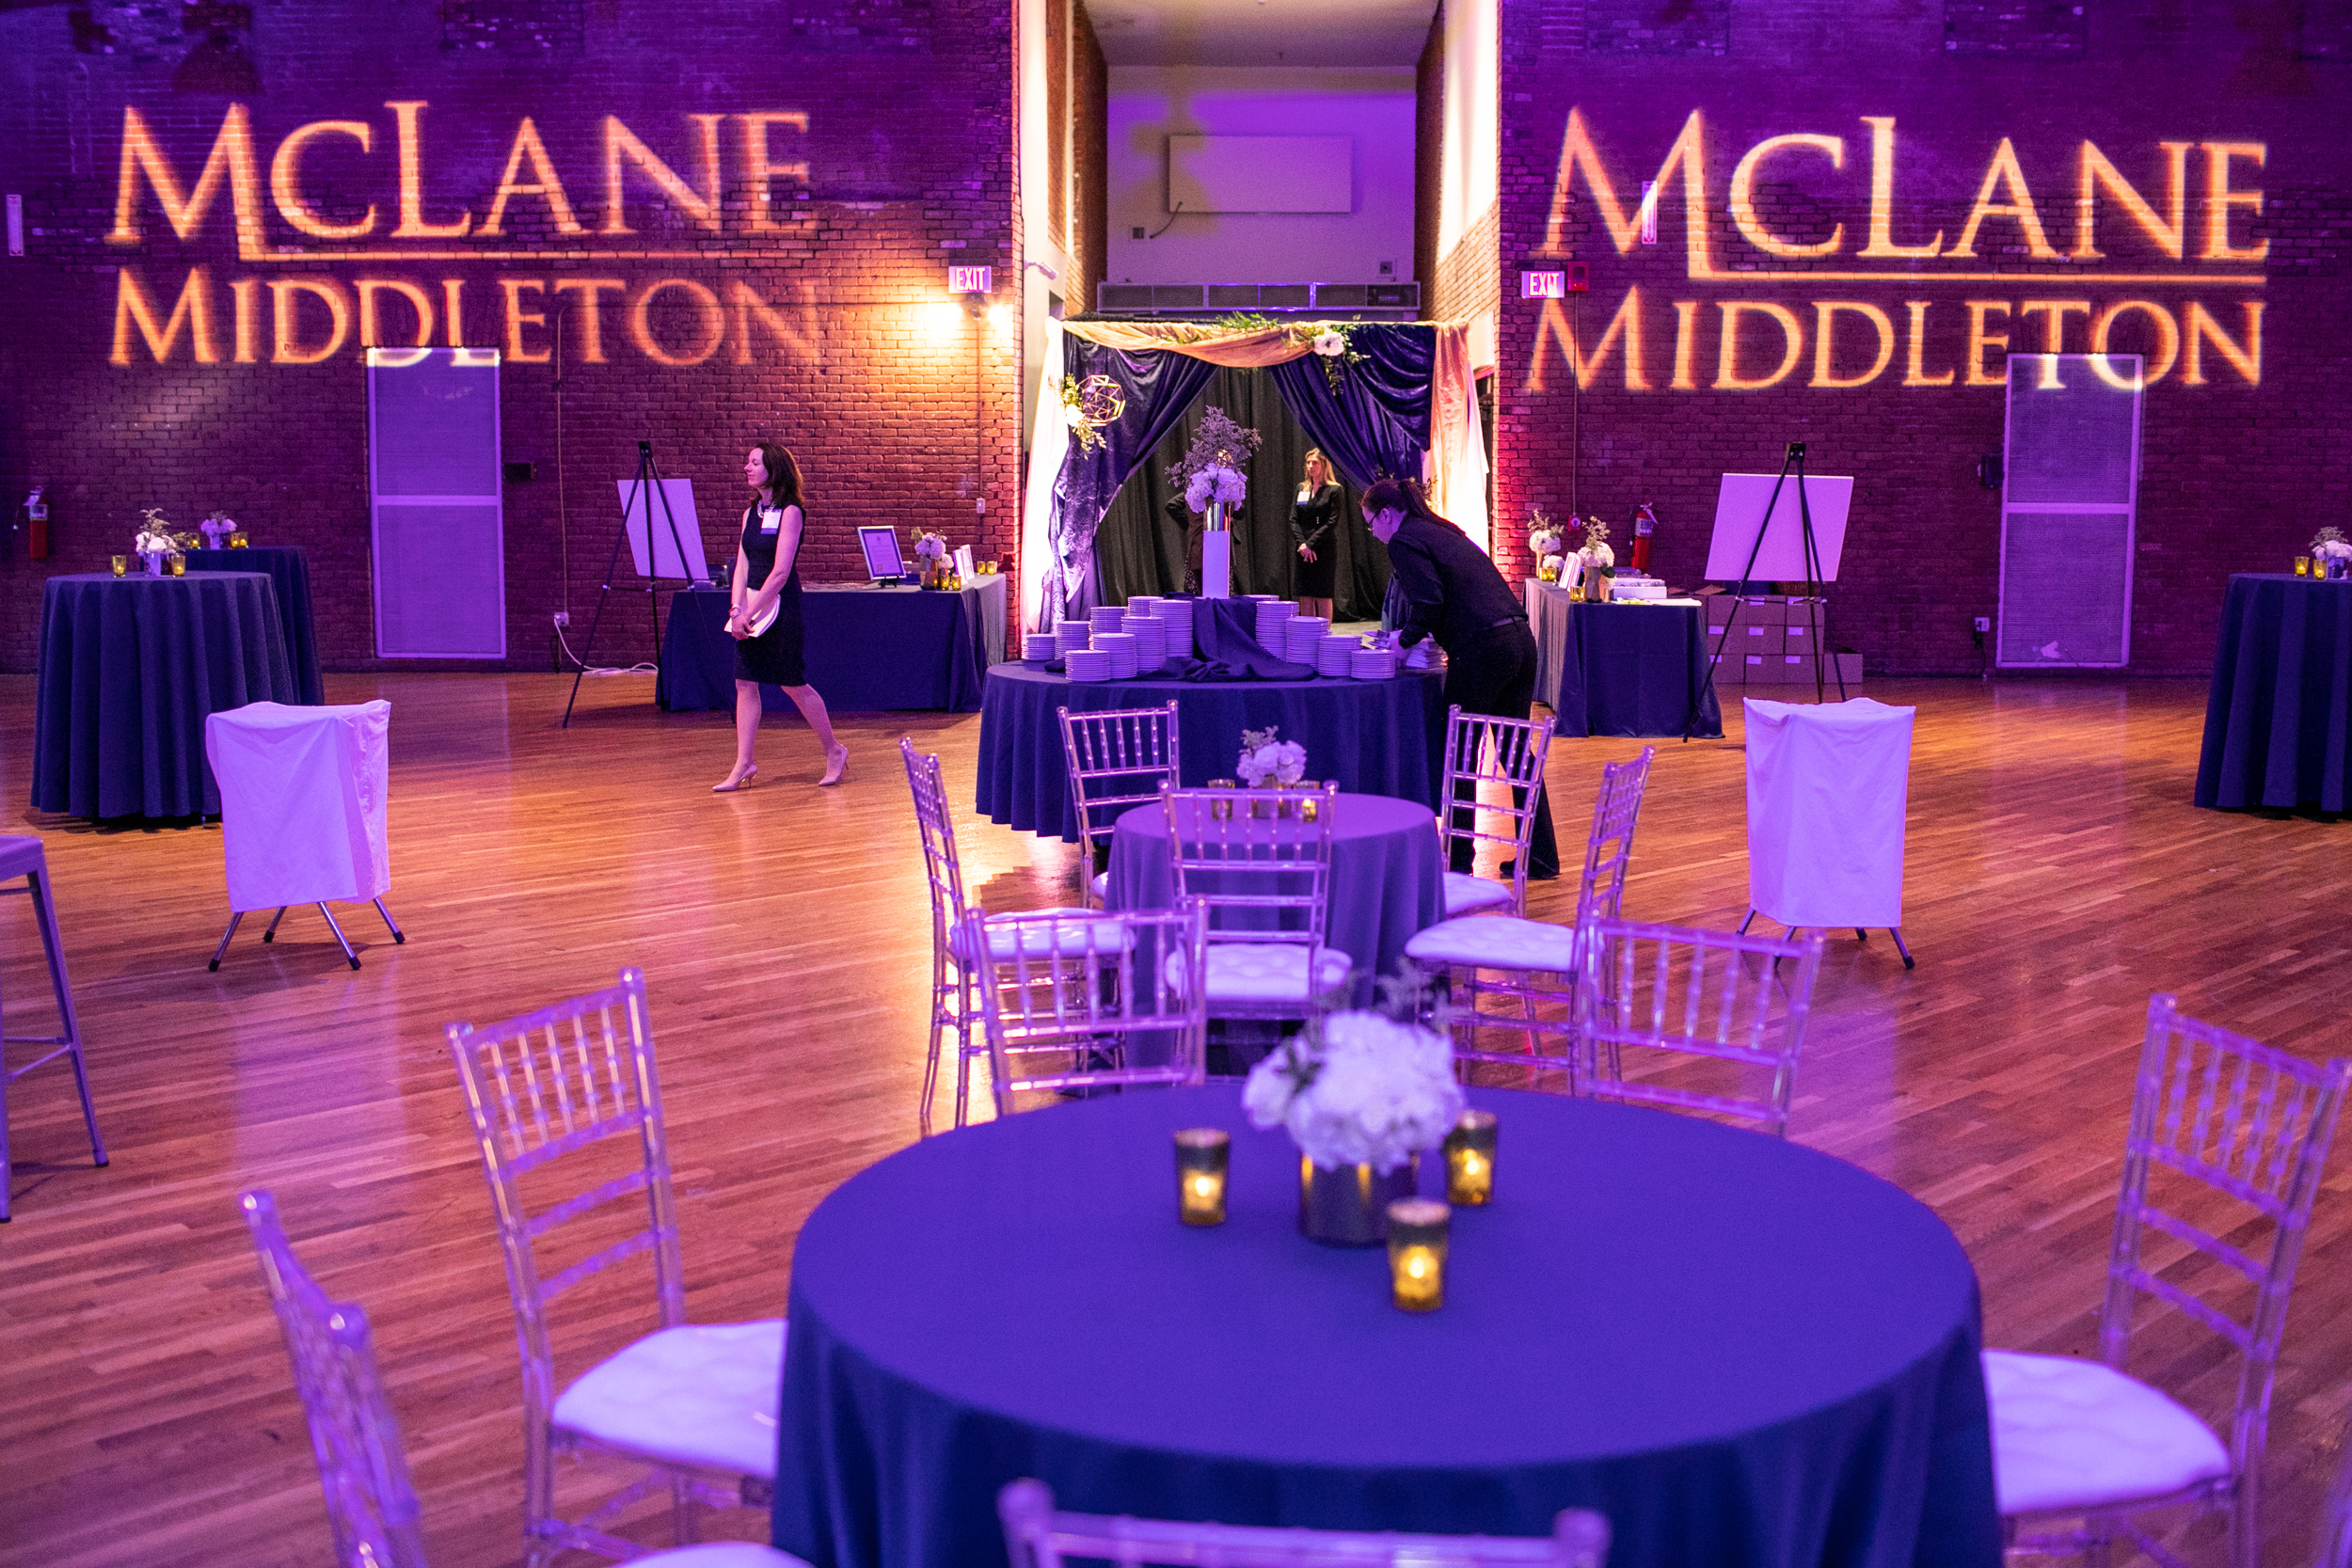 Malloy_Events_Pizzuti_McLane_Middleton_Centennial_Celebration_Manchester_NH_Corporate_Production